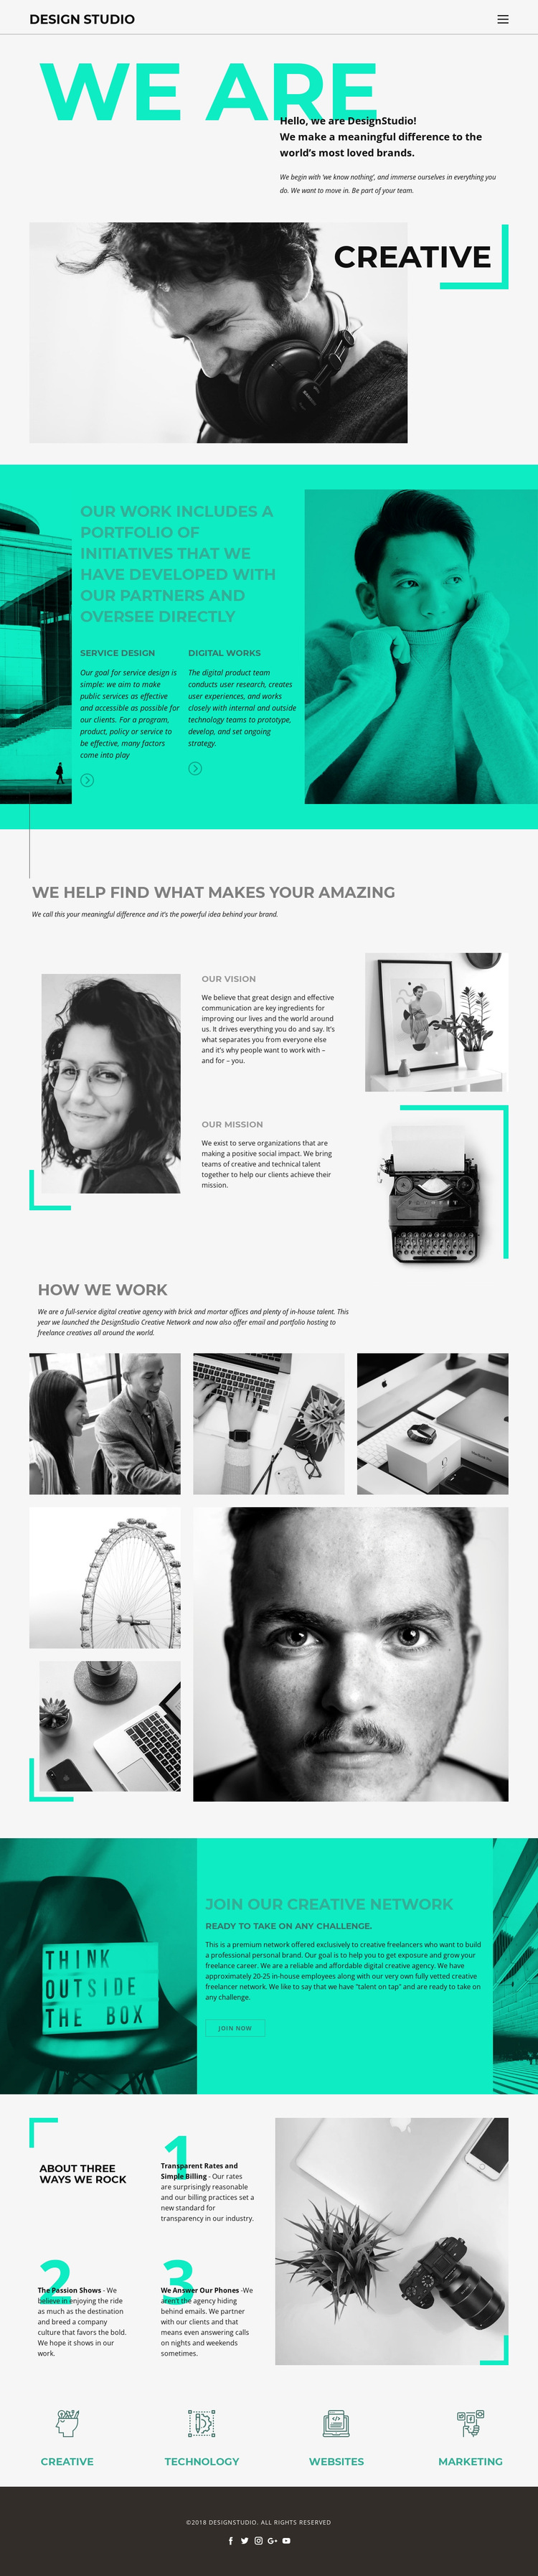 We are creative business HTML5 Template